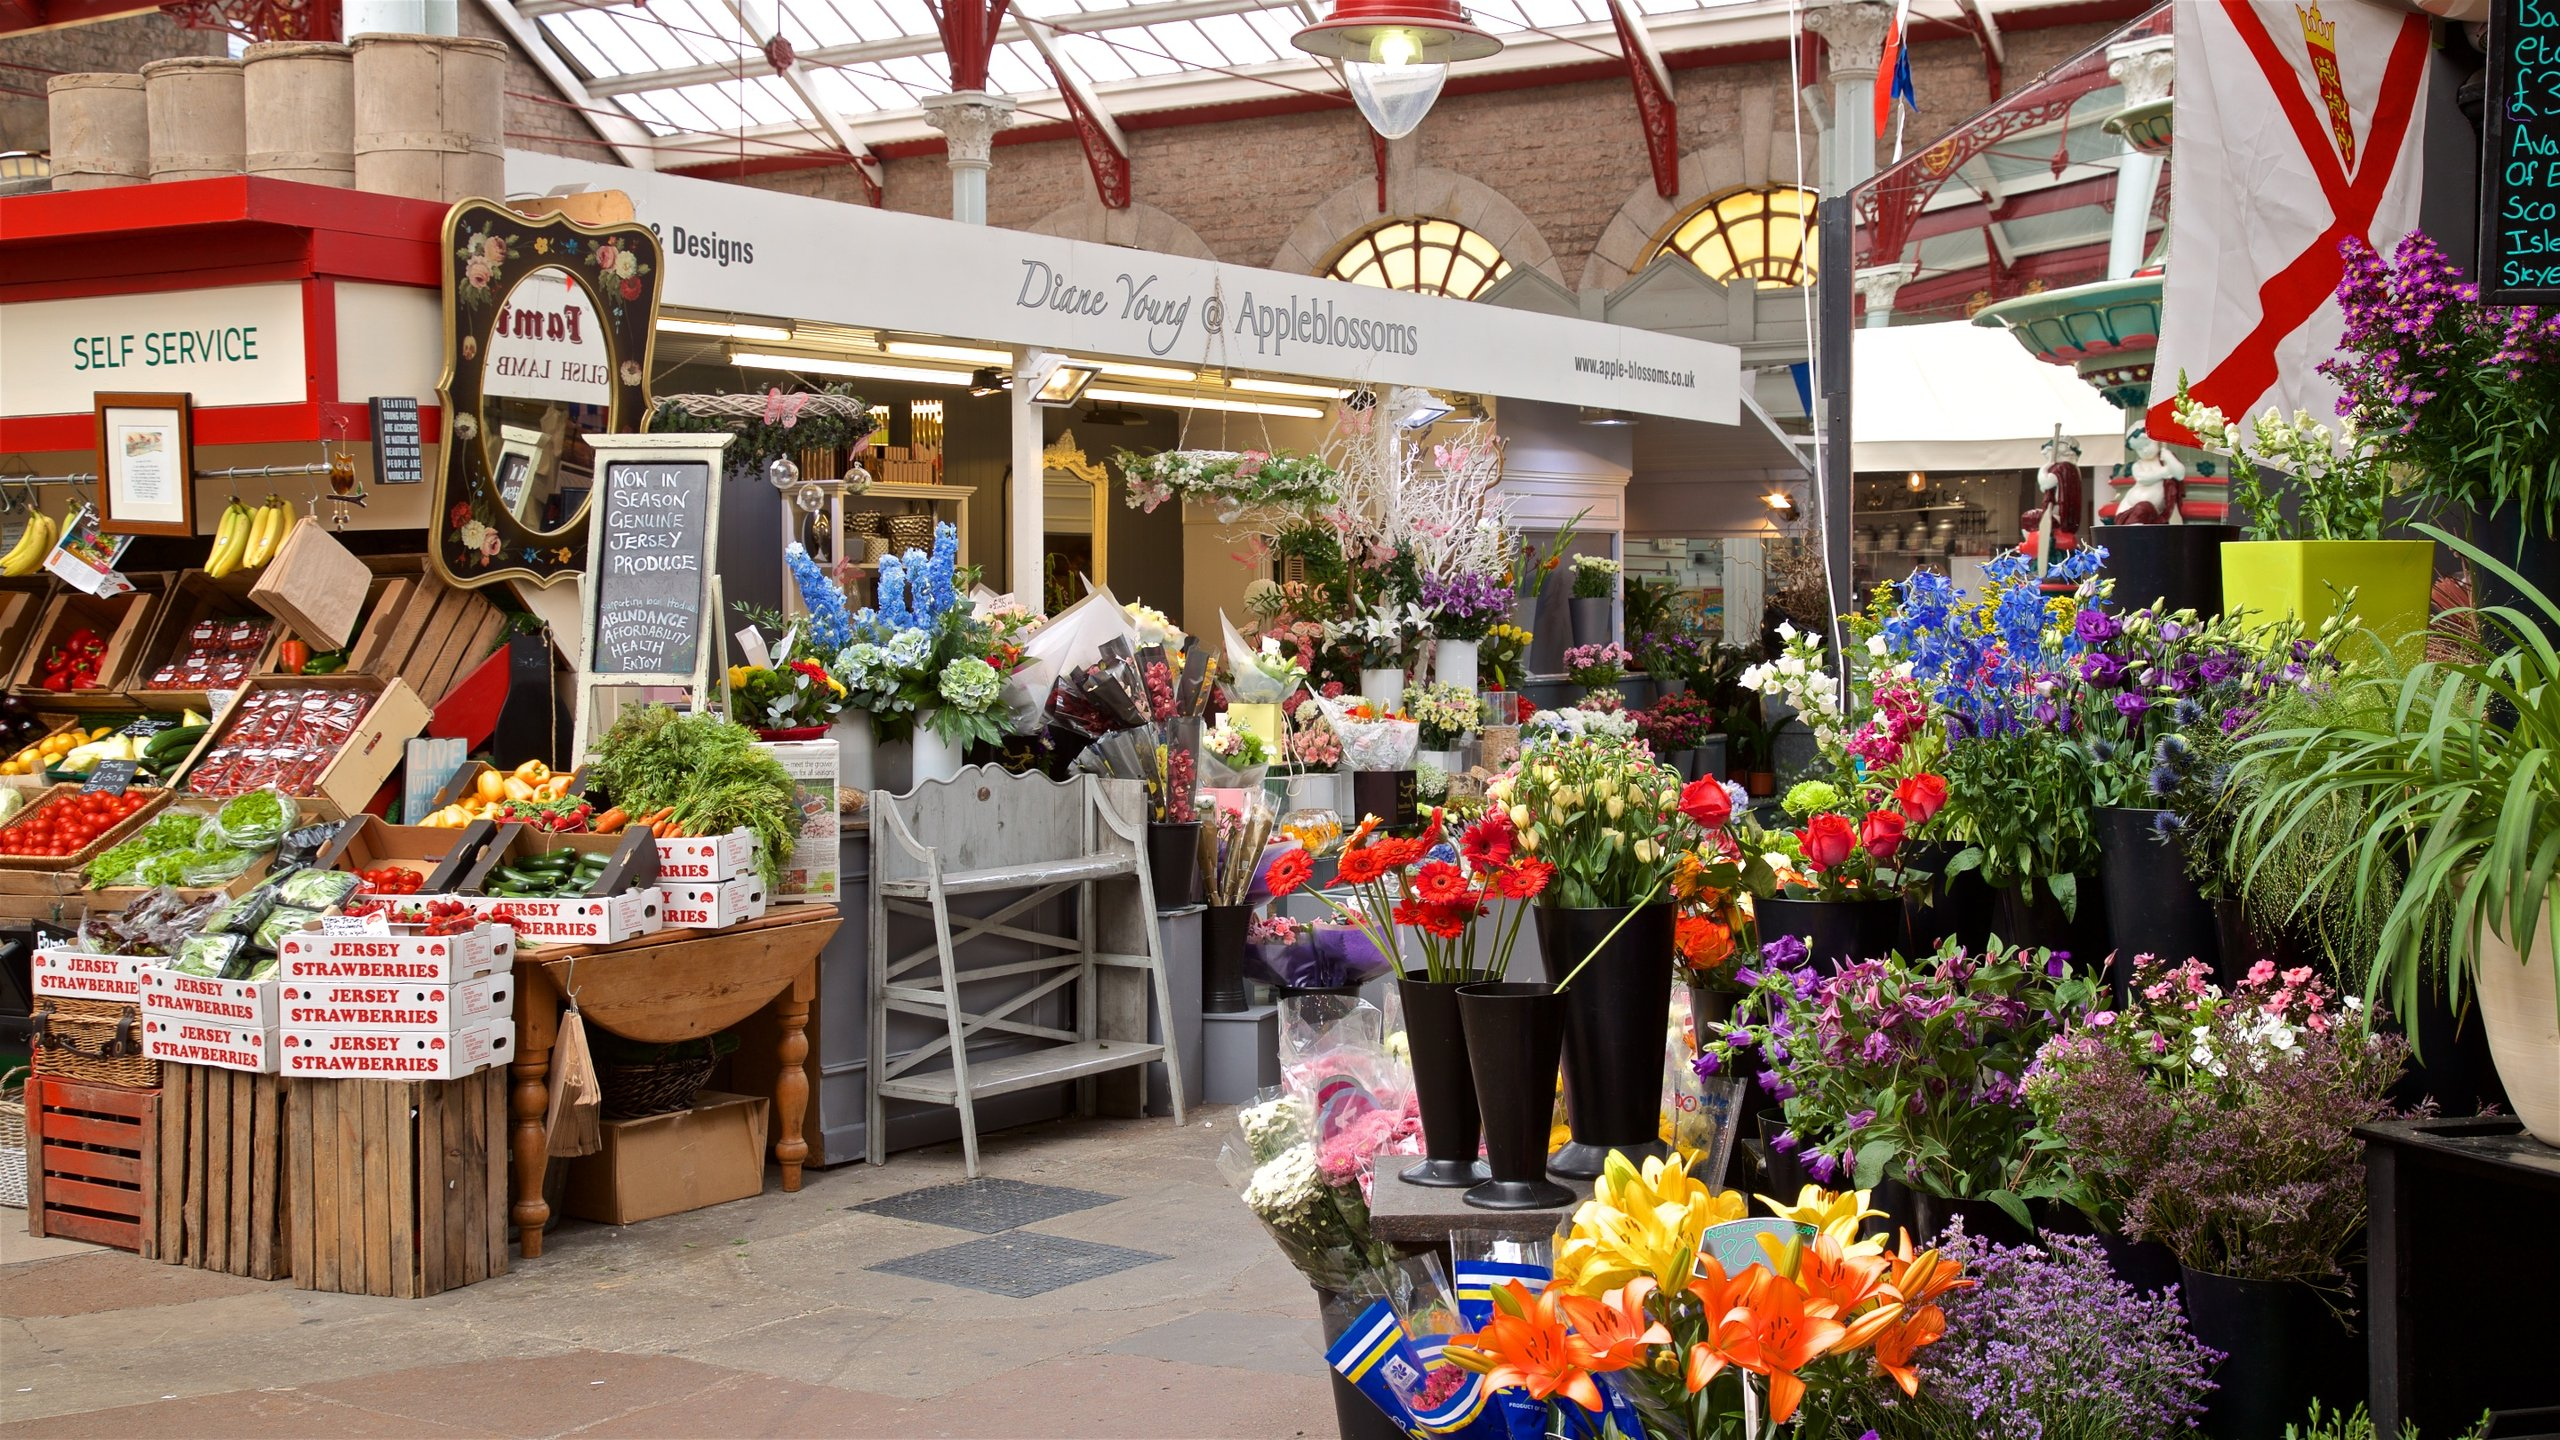 Bright flowers, traditional stalls and a fountain full of goldfish create a lasting impression on visitors to this thriving market that began in the 1880s.